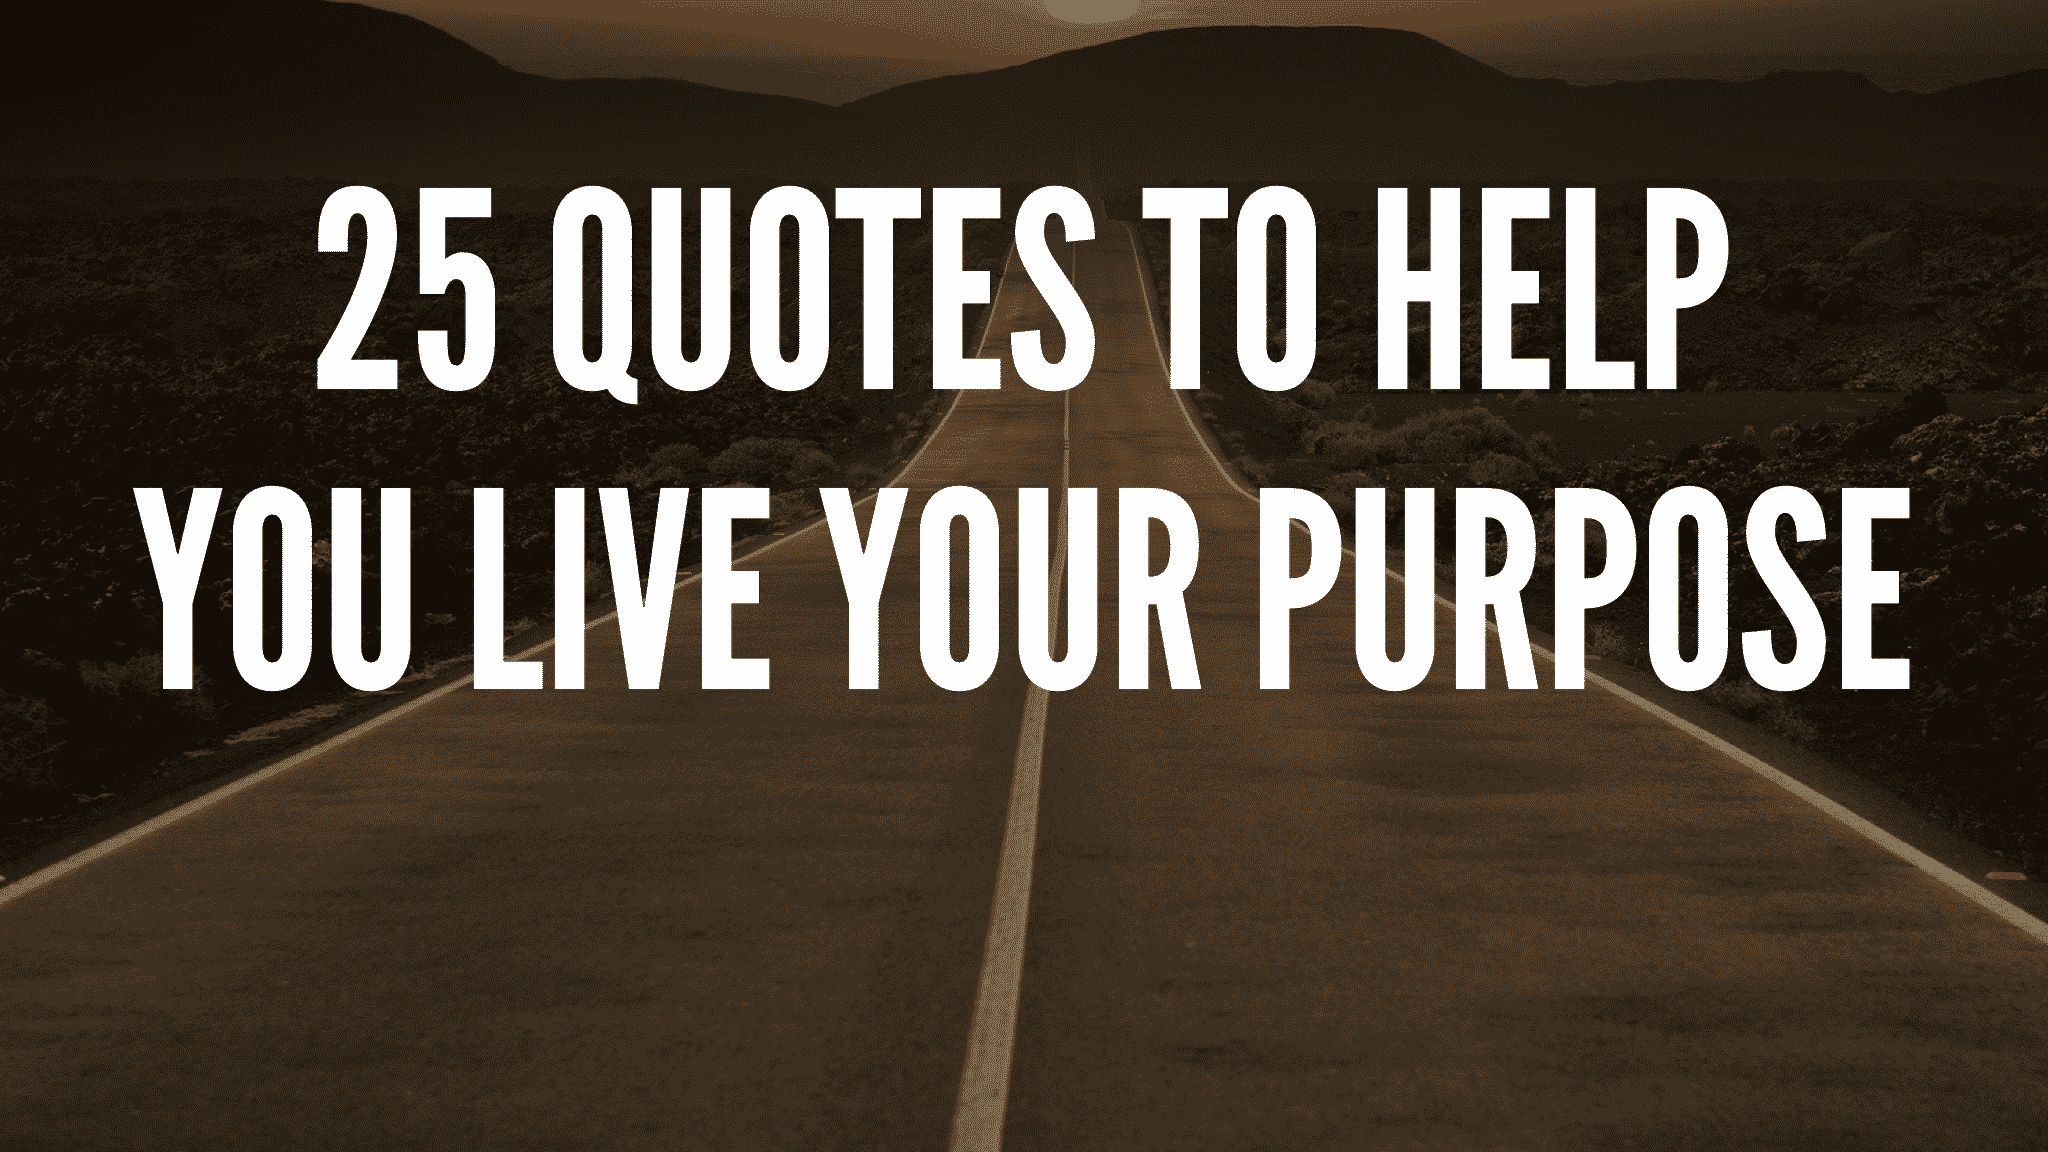 25 Quotes to Help You Live Your Purpose